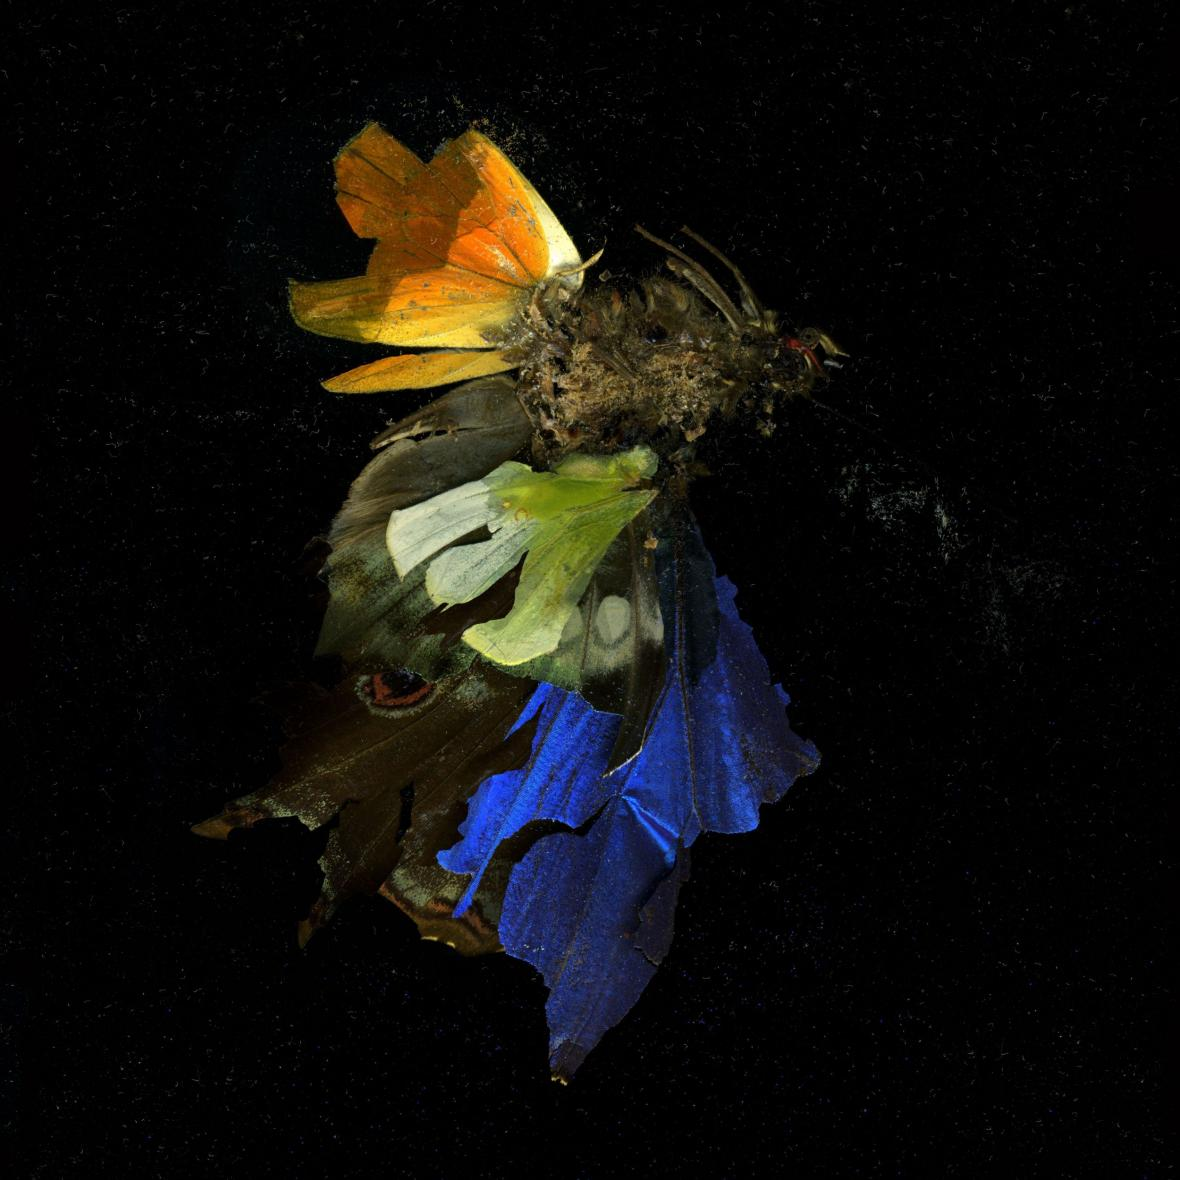 Mat Collishaw / Insecticide 15, 2009